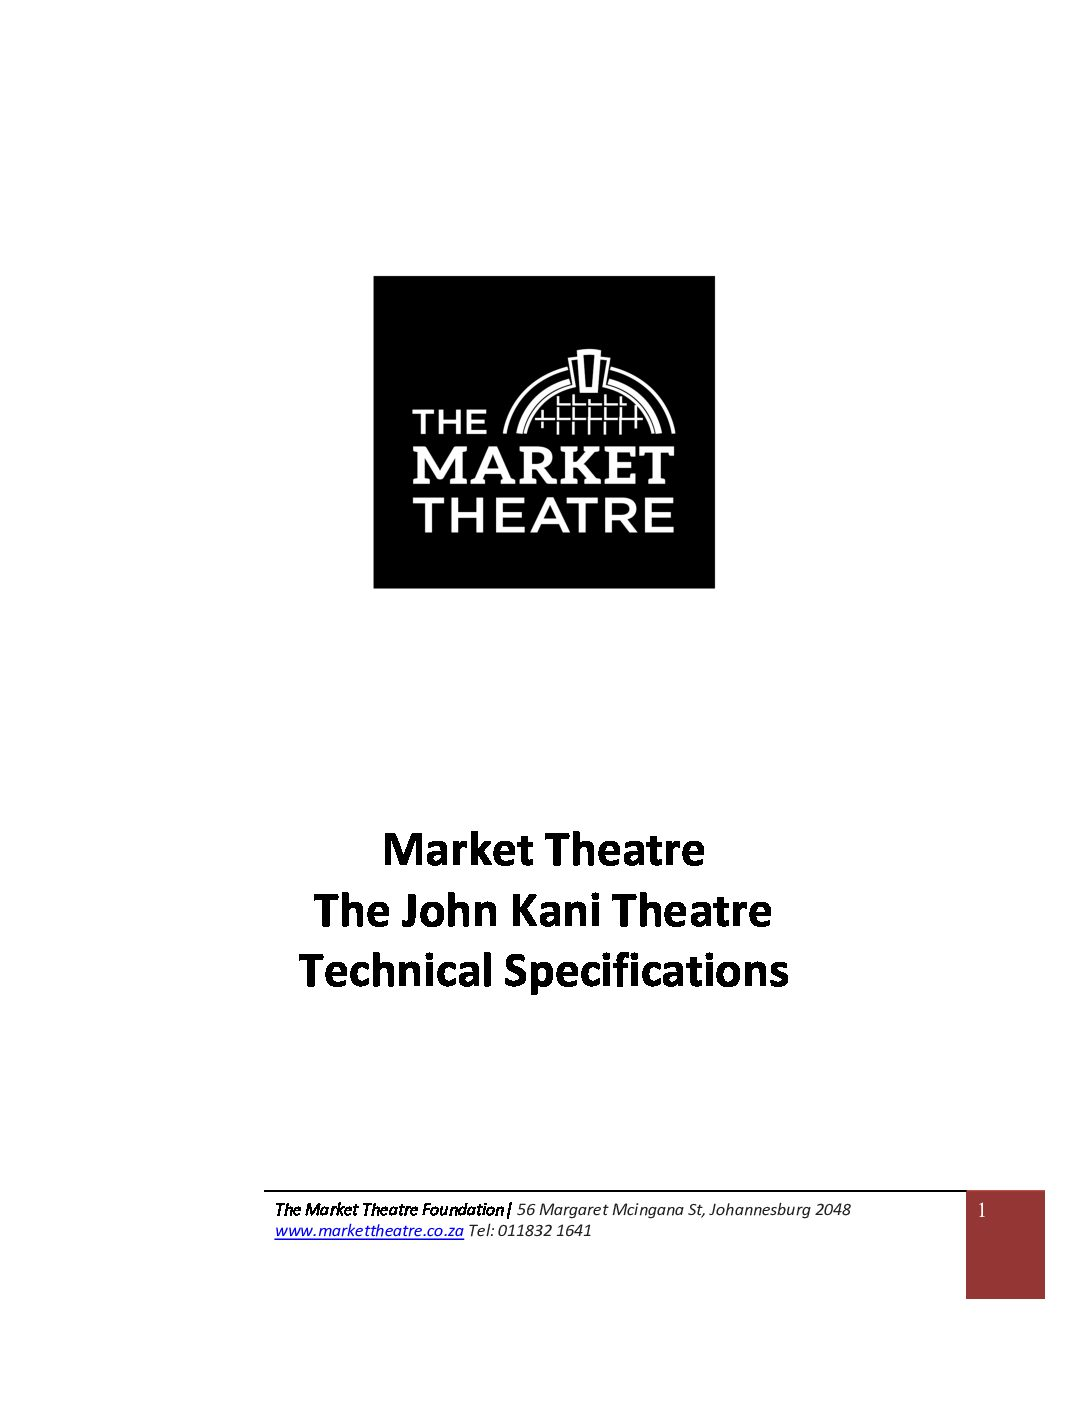 john-kani-theatre-technical-specifications